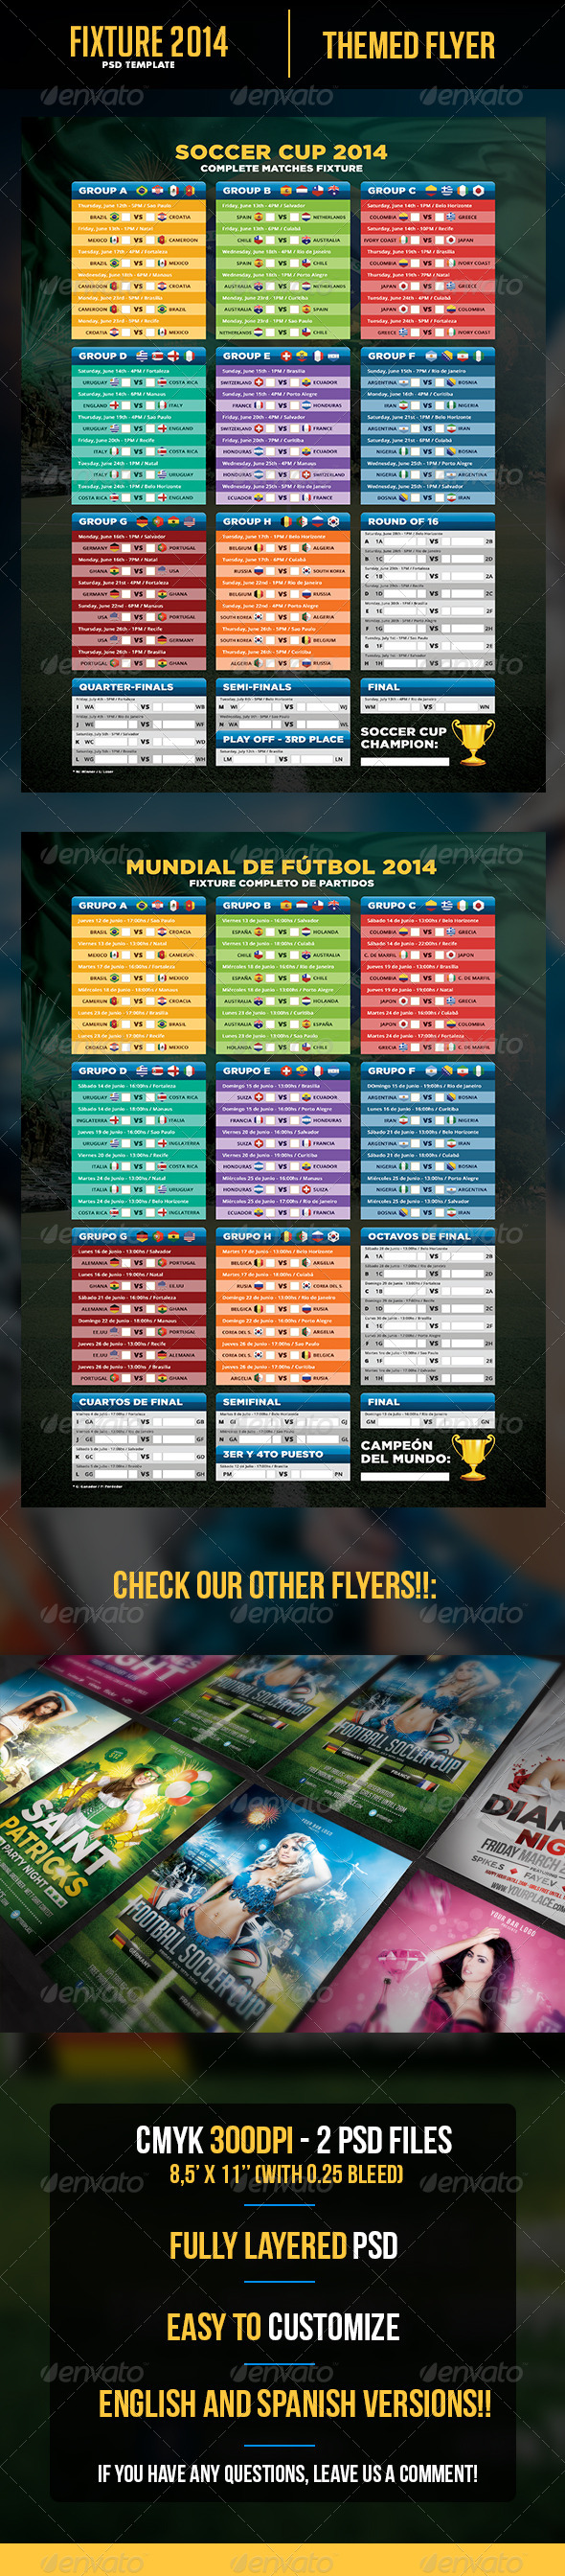 Soccer Cup 2014 Fixture - English and Spanish - Print Templates